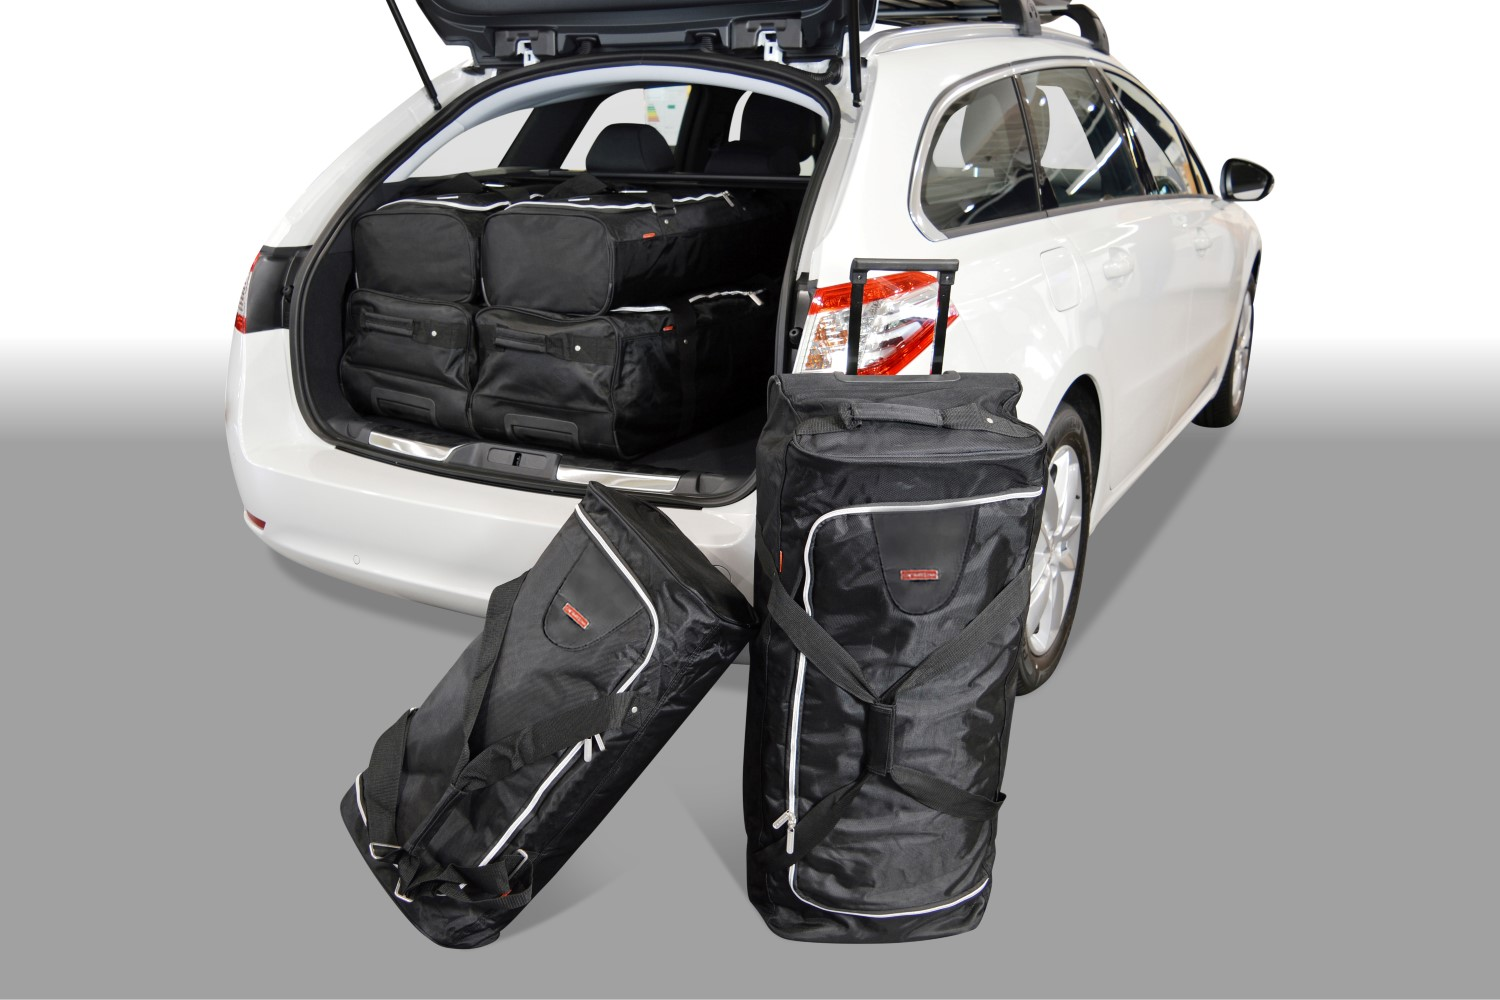 Peugeot 508 SW 2011- wagon Car-Bags.com travel bag set (1)